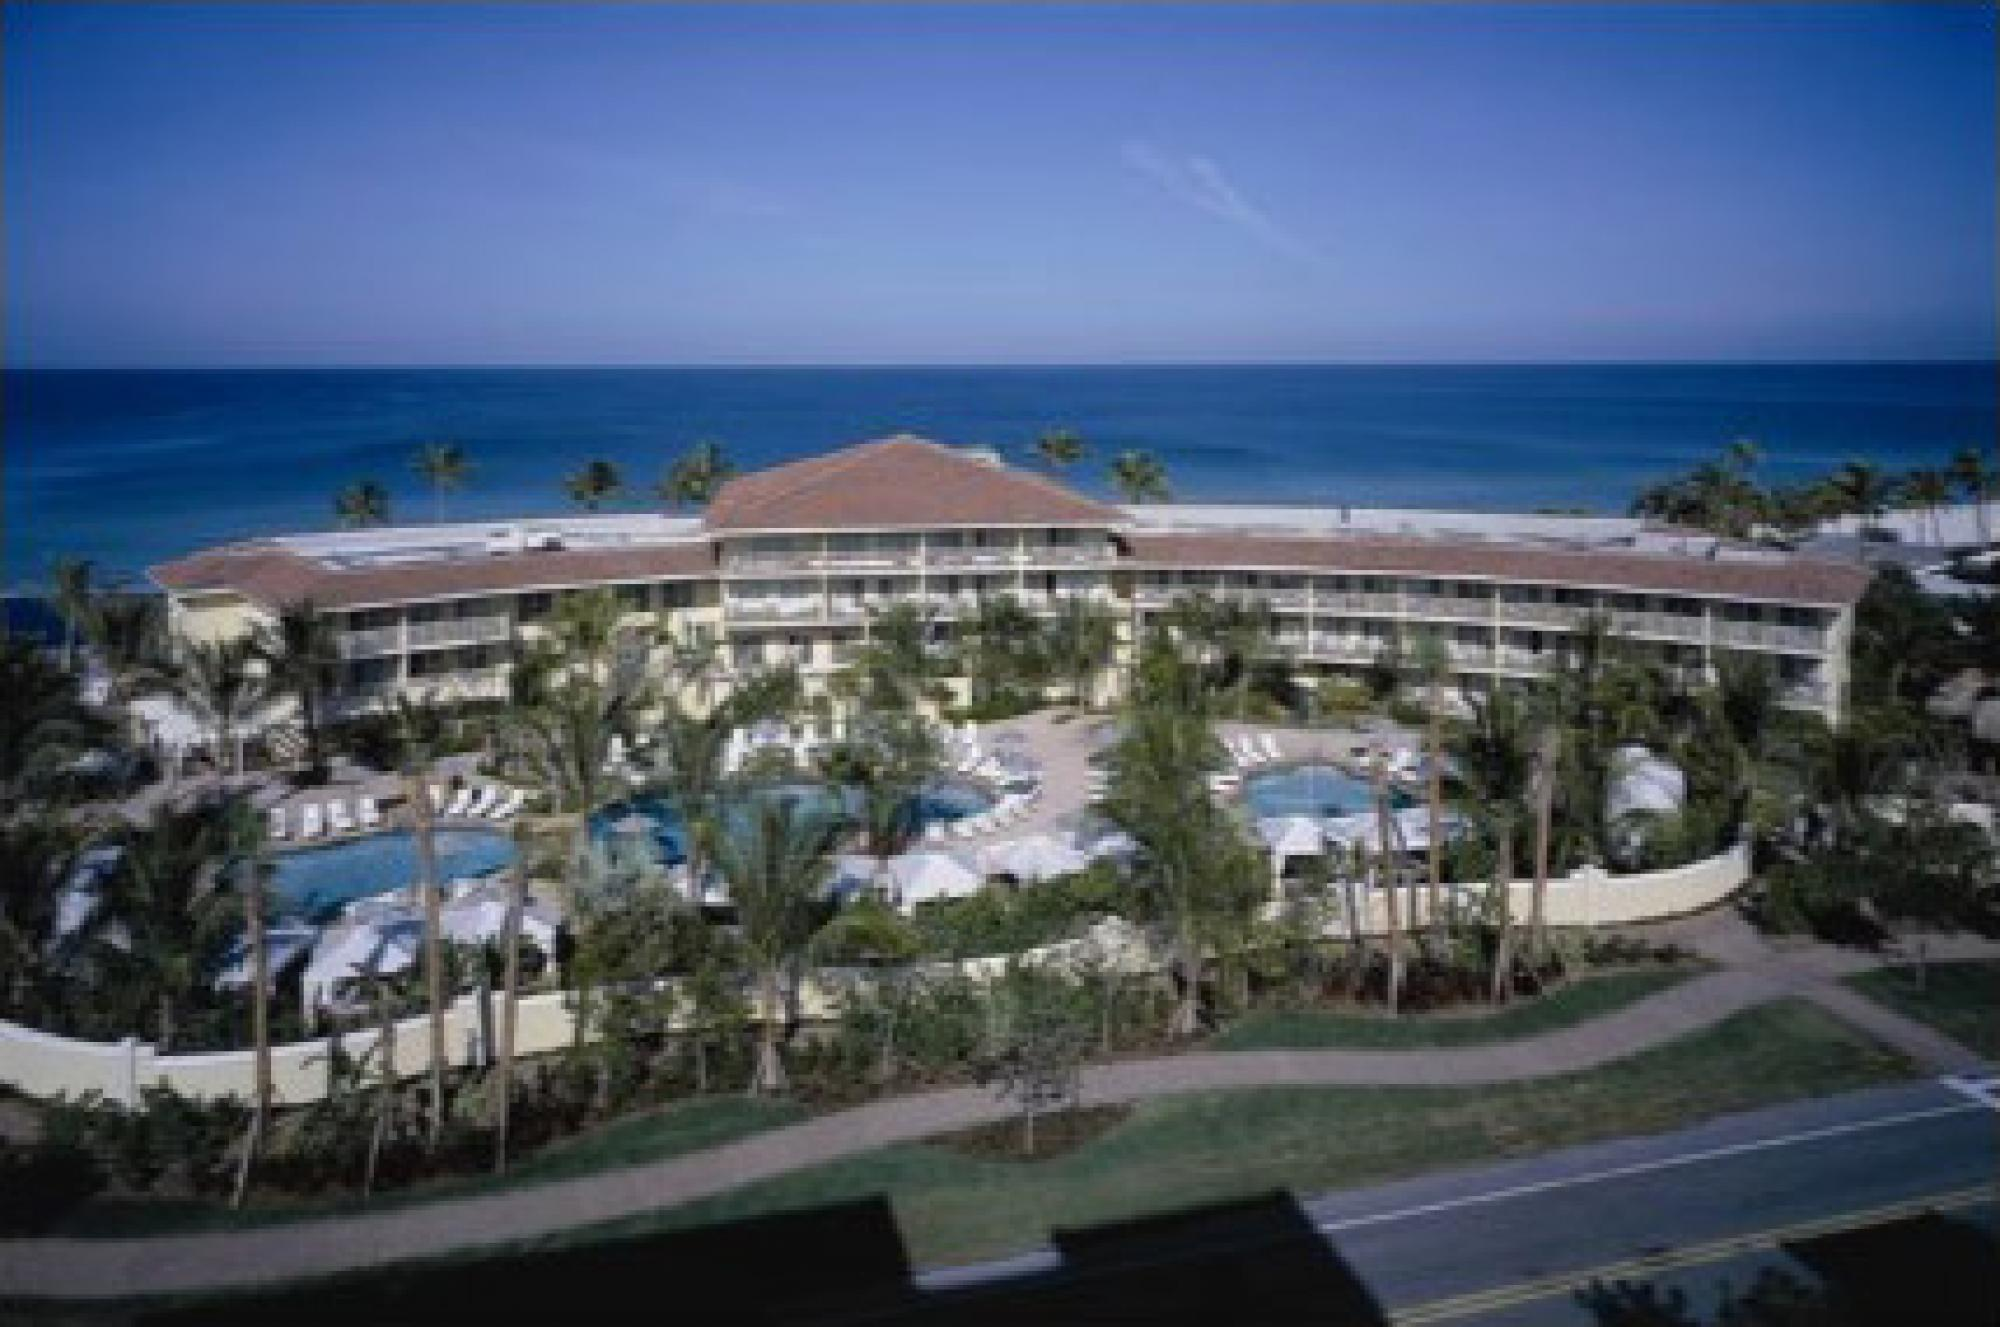 La Playa Beach Resort, Naples, FL